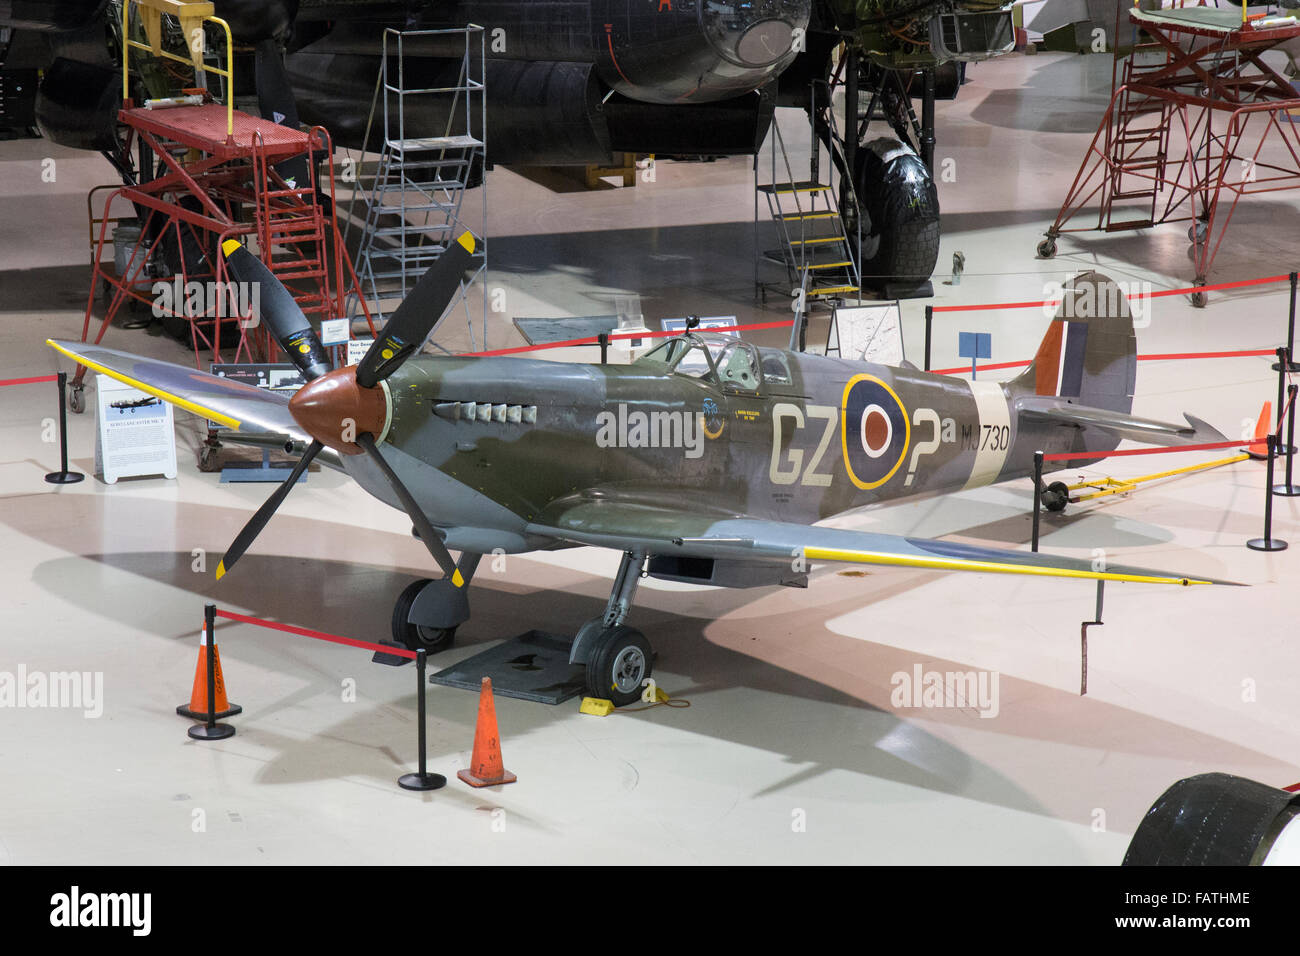 A Spitfire World War Two airplane inside the Canadian